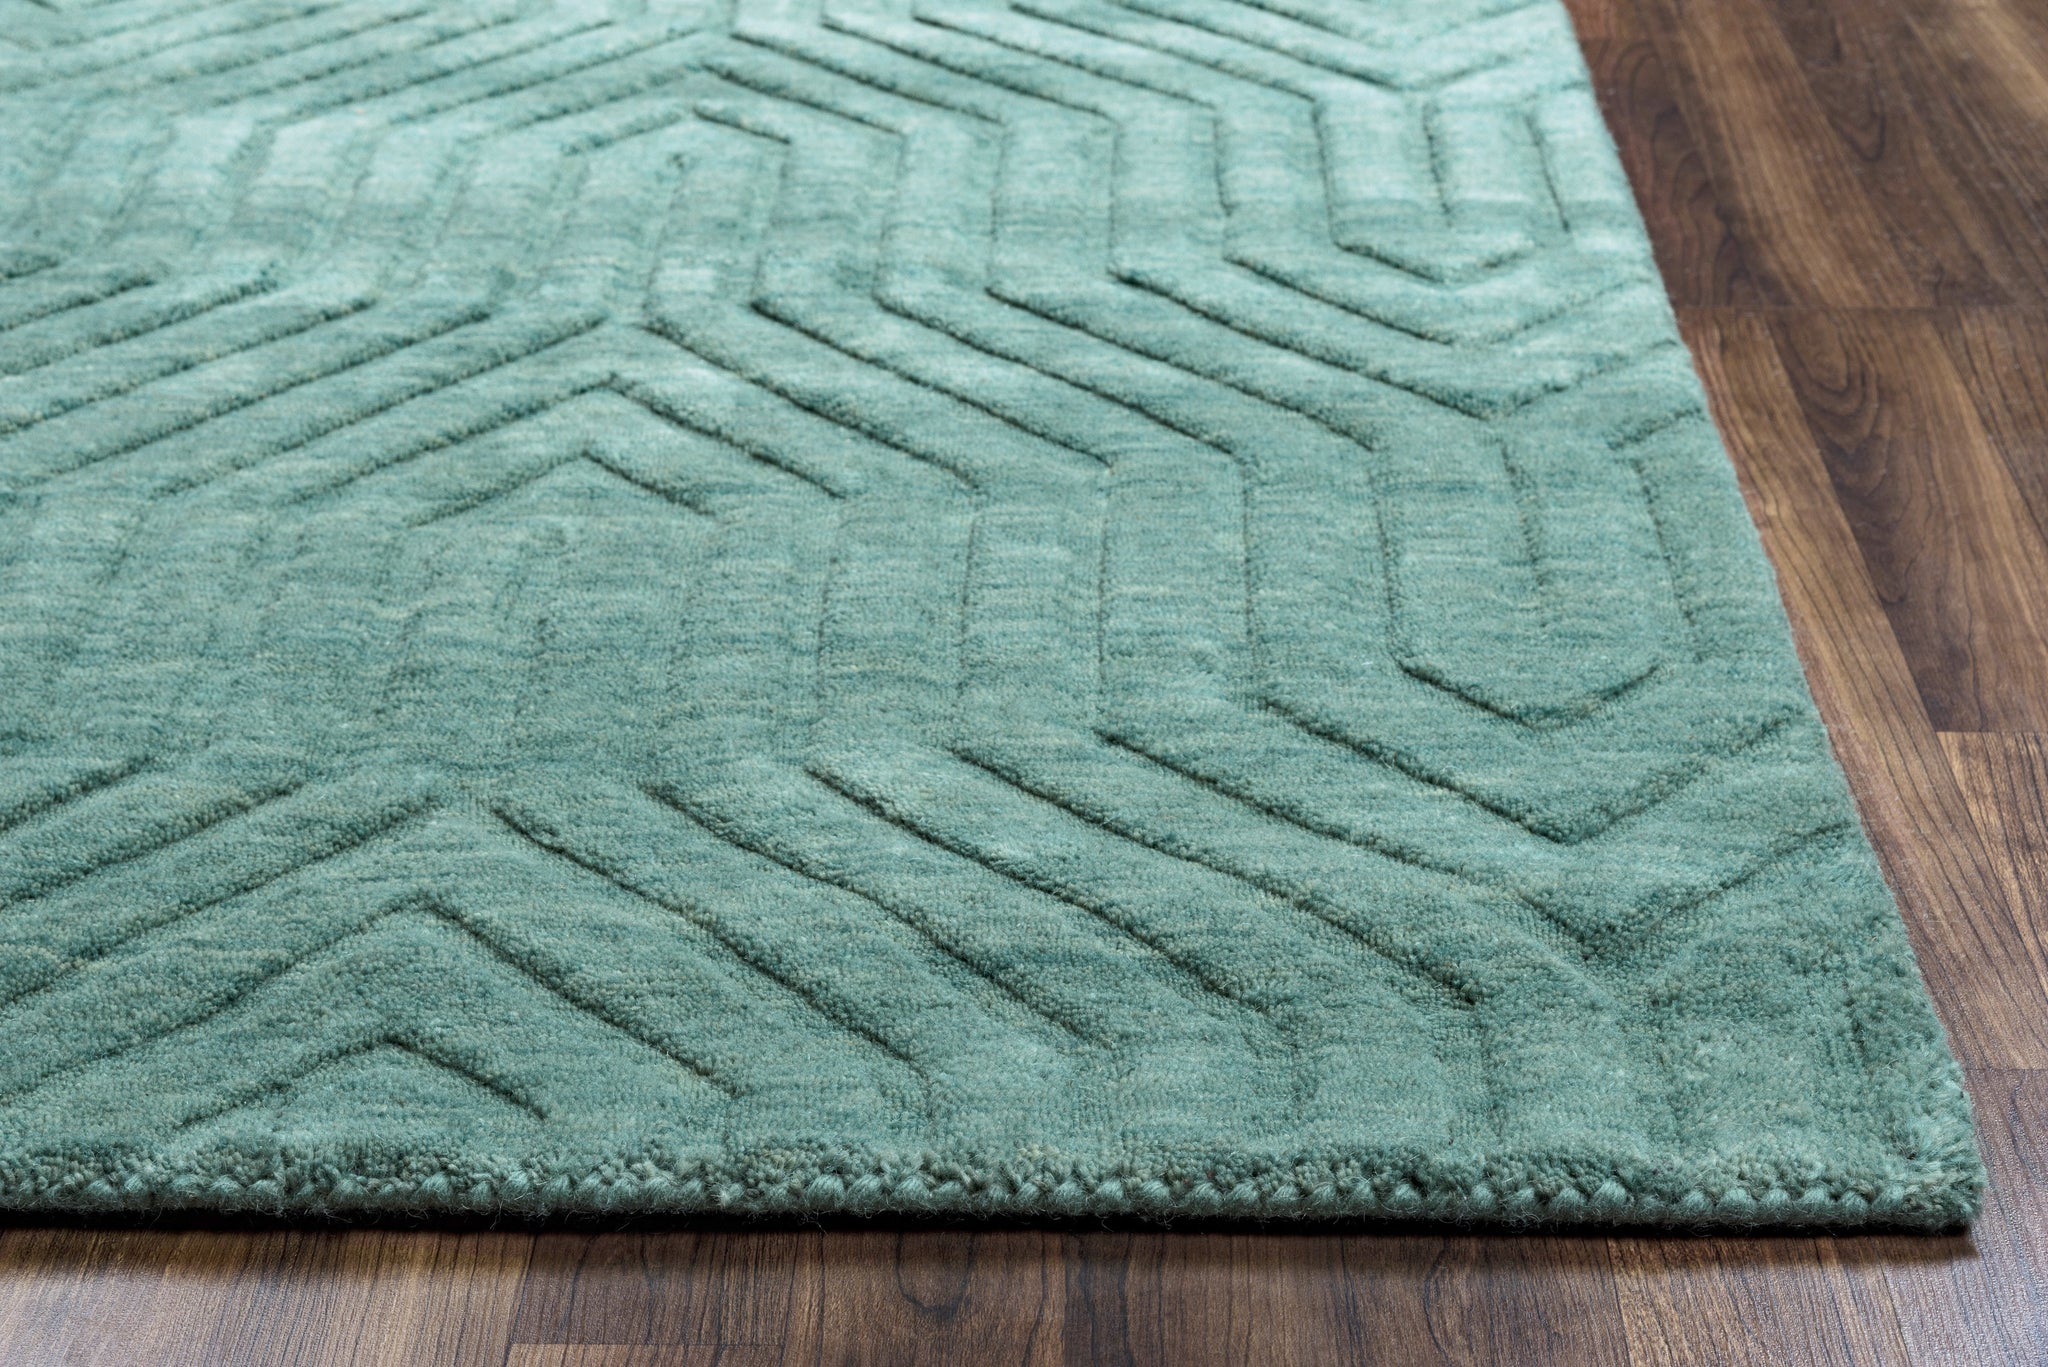 Rizzy Home Technique Tc8577 Blue Dark Teal Solid Area Rug